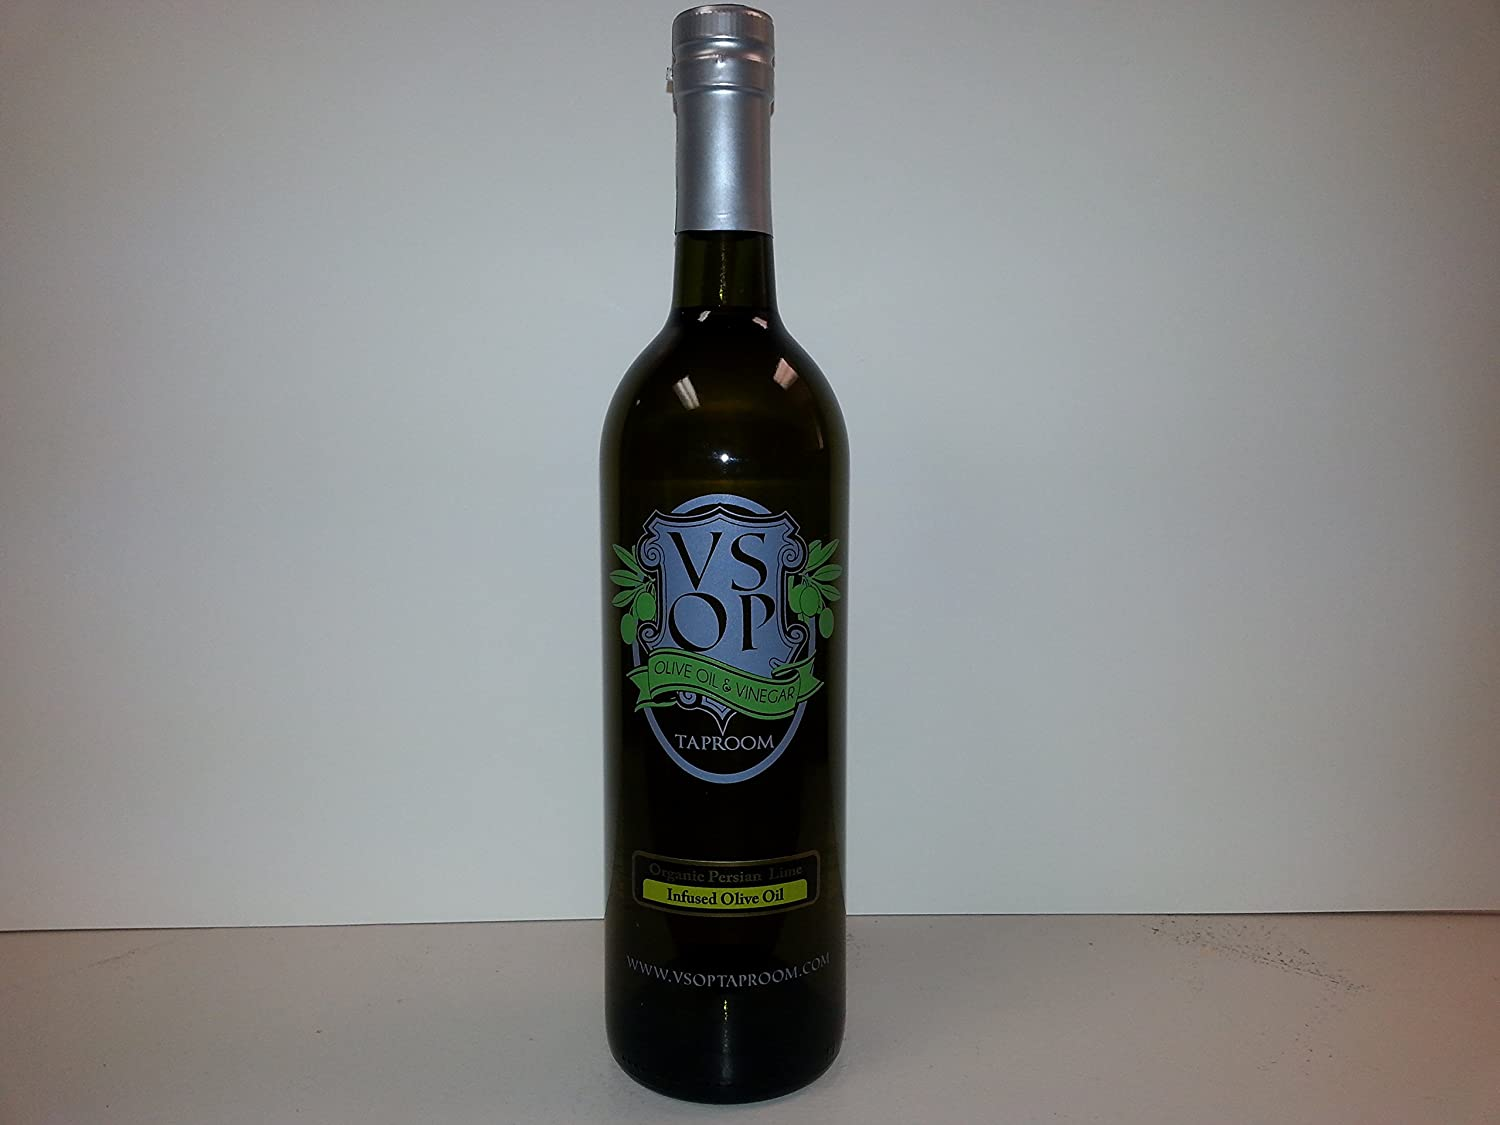 VSOP Organic New product type Persian Lime Infused Extra Oil 750 ml Virgin Bombing new work Olive